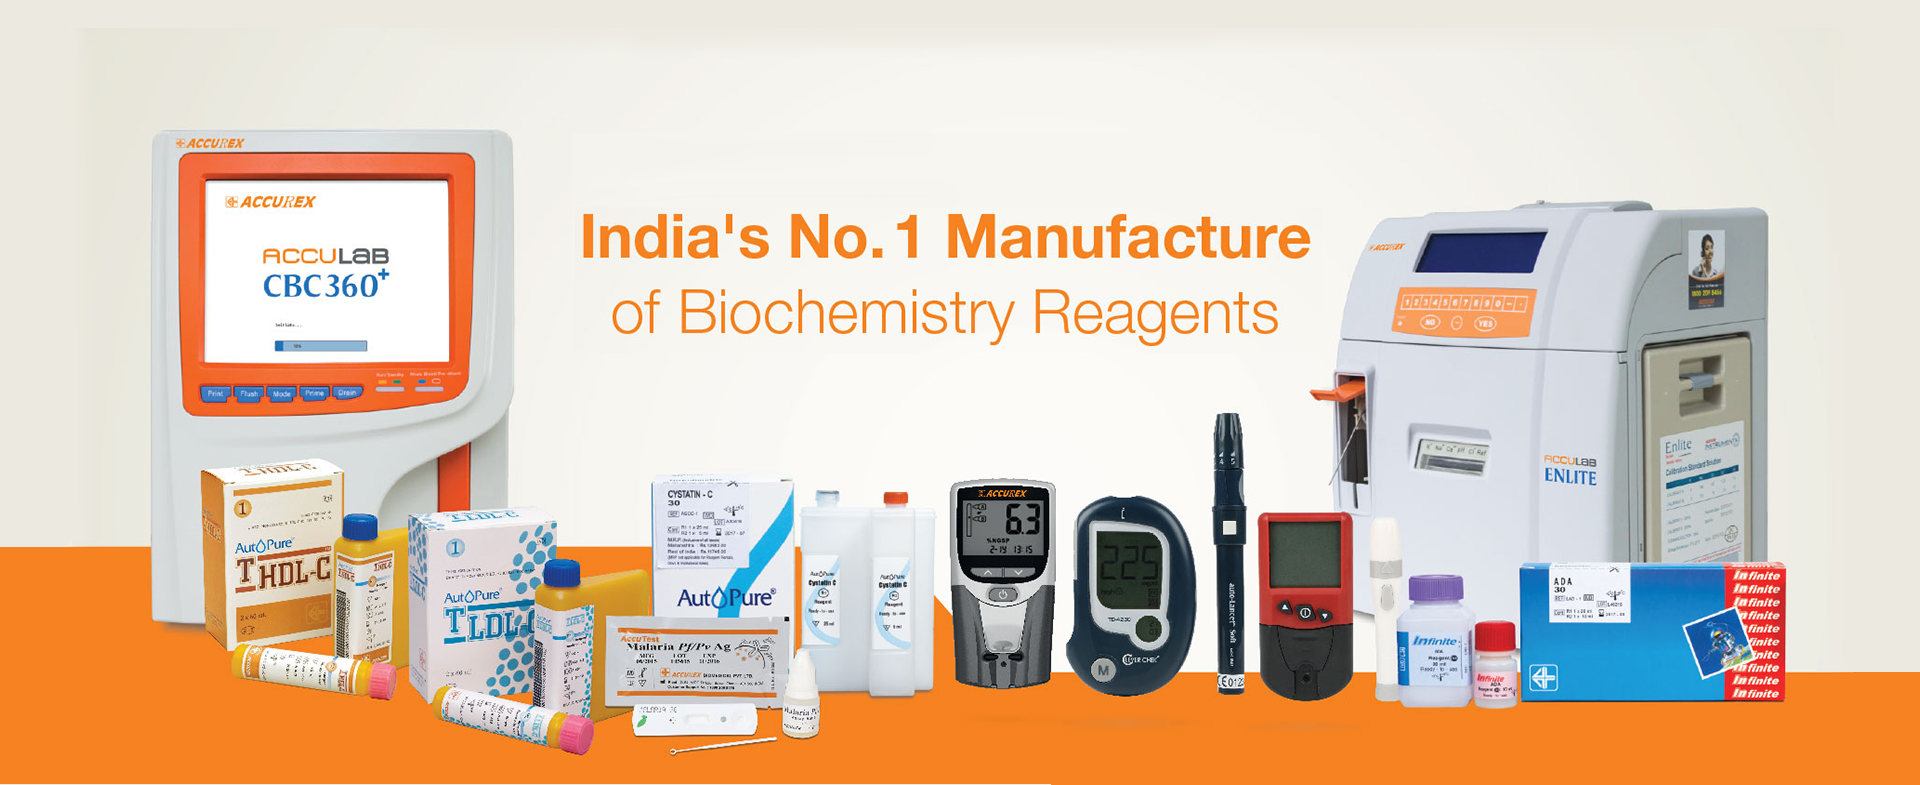 Accurex Biomedical Pvt  Ltd